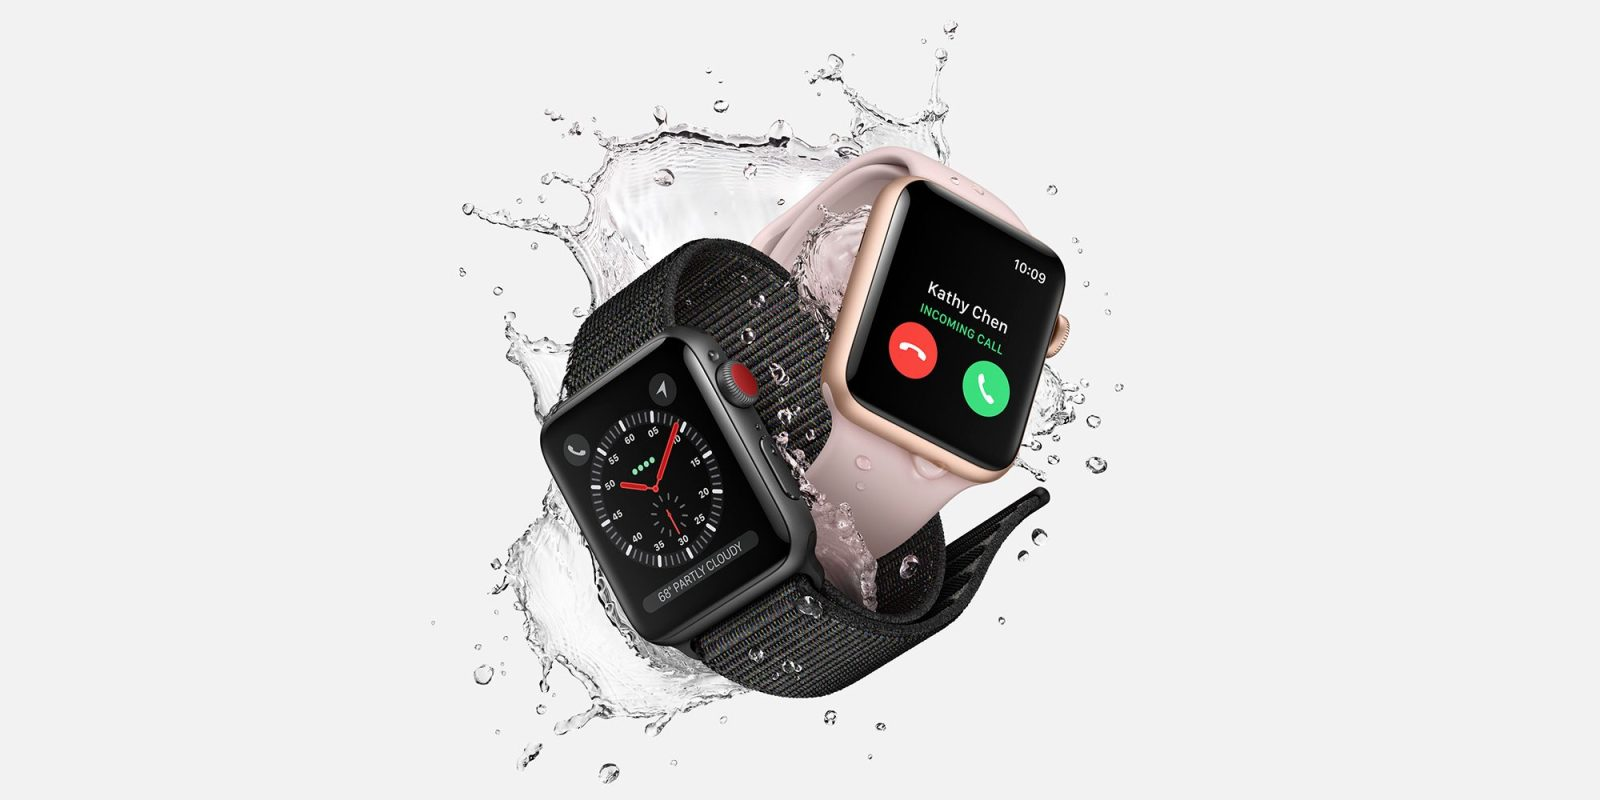 Comment: Apple Watch should be on every wrist after $129 Black Friday special